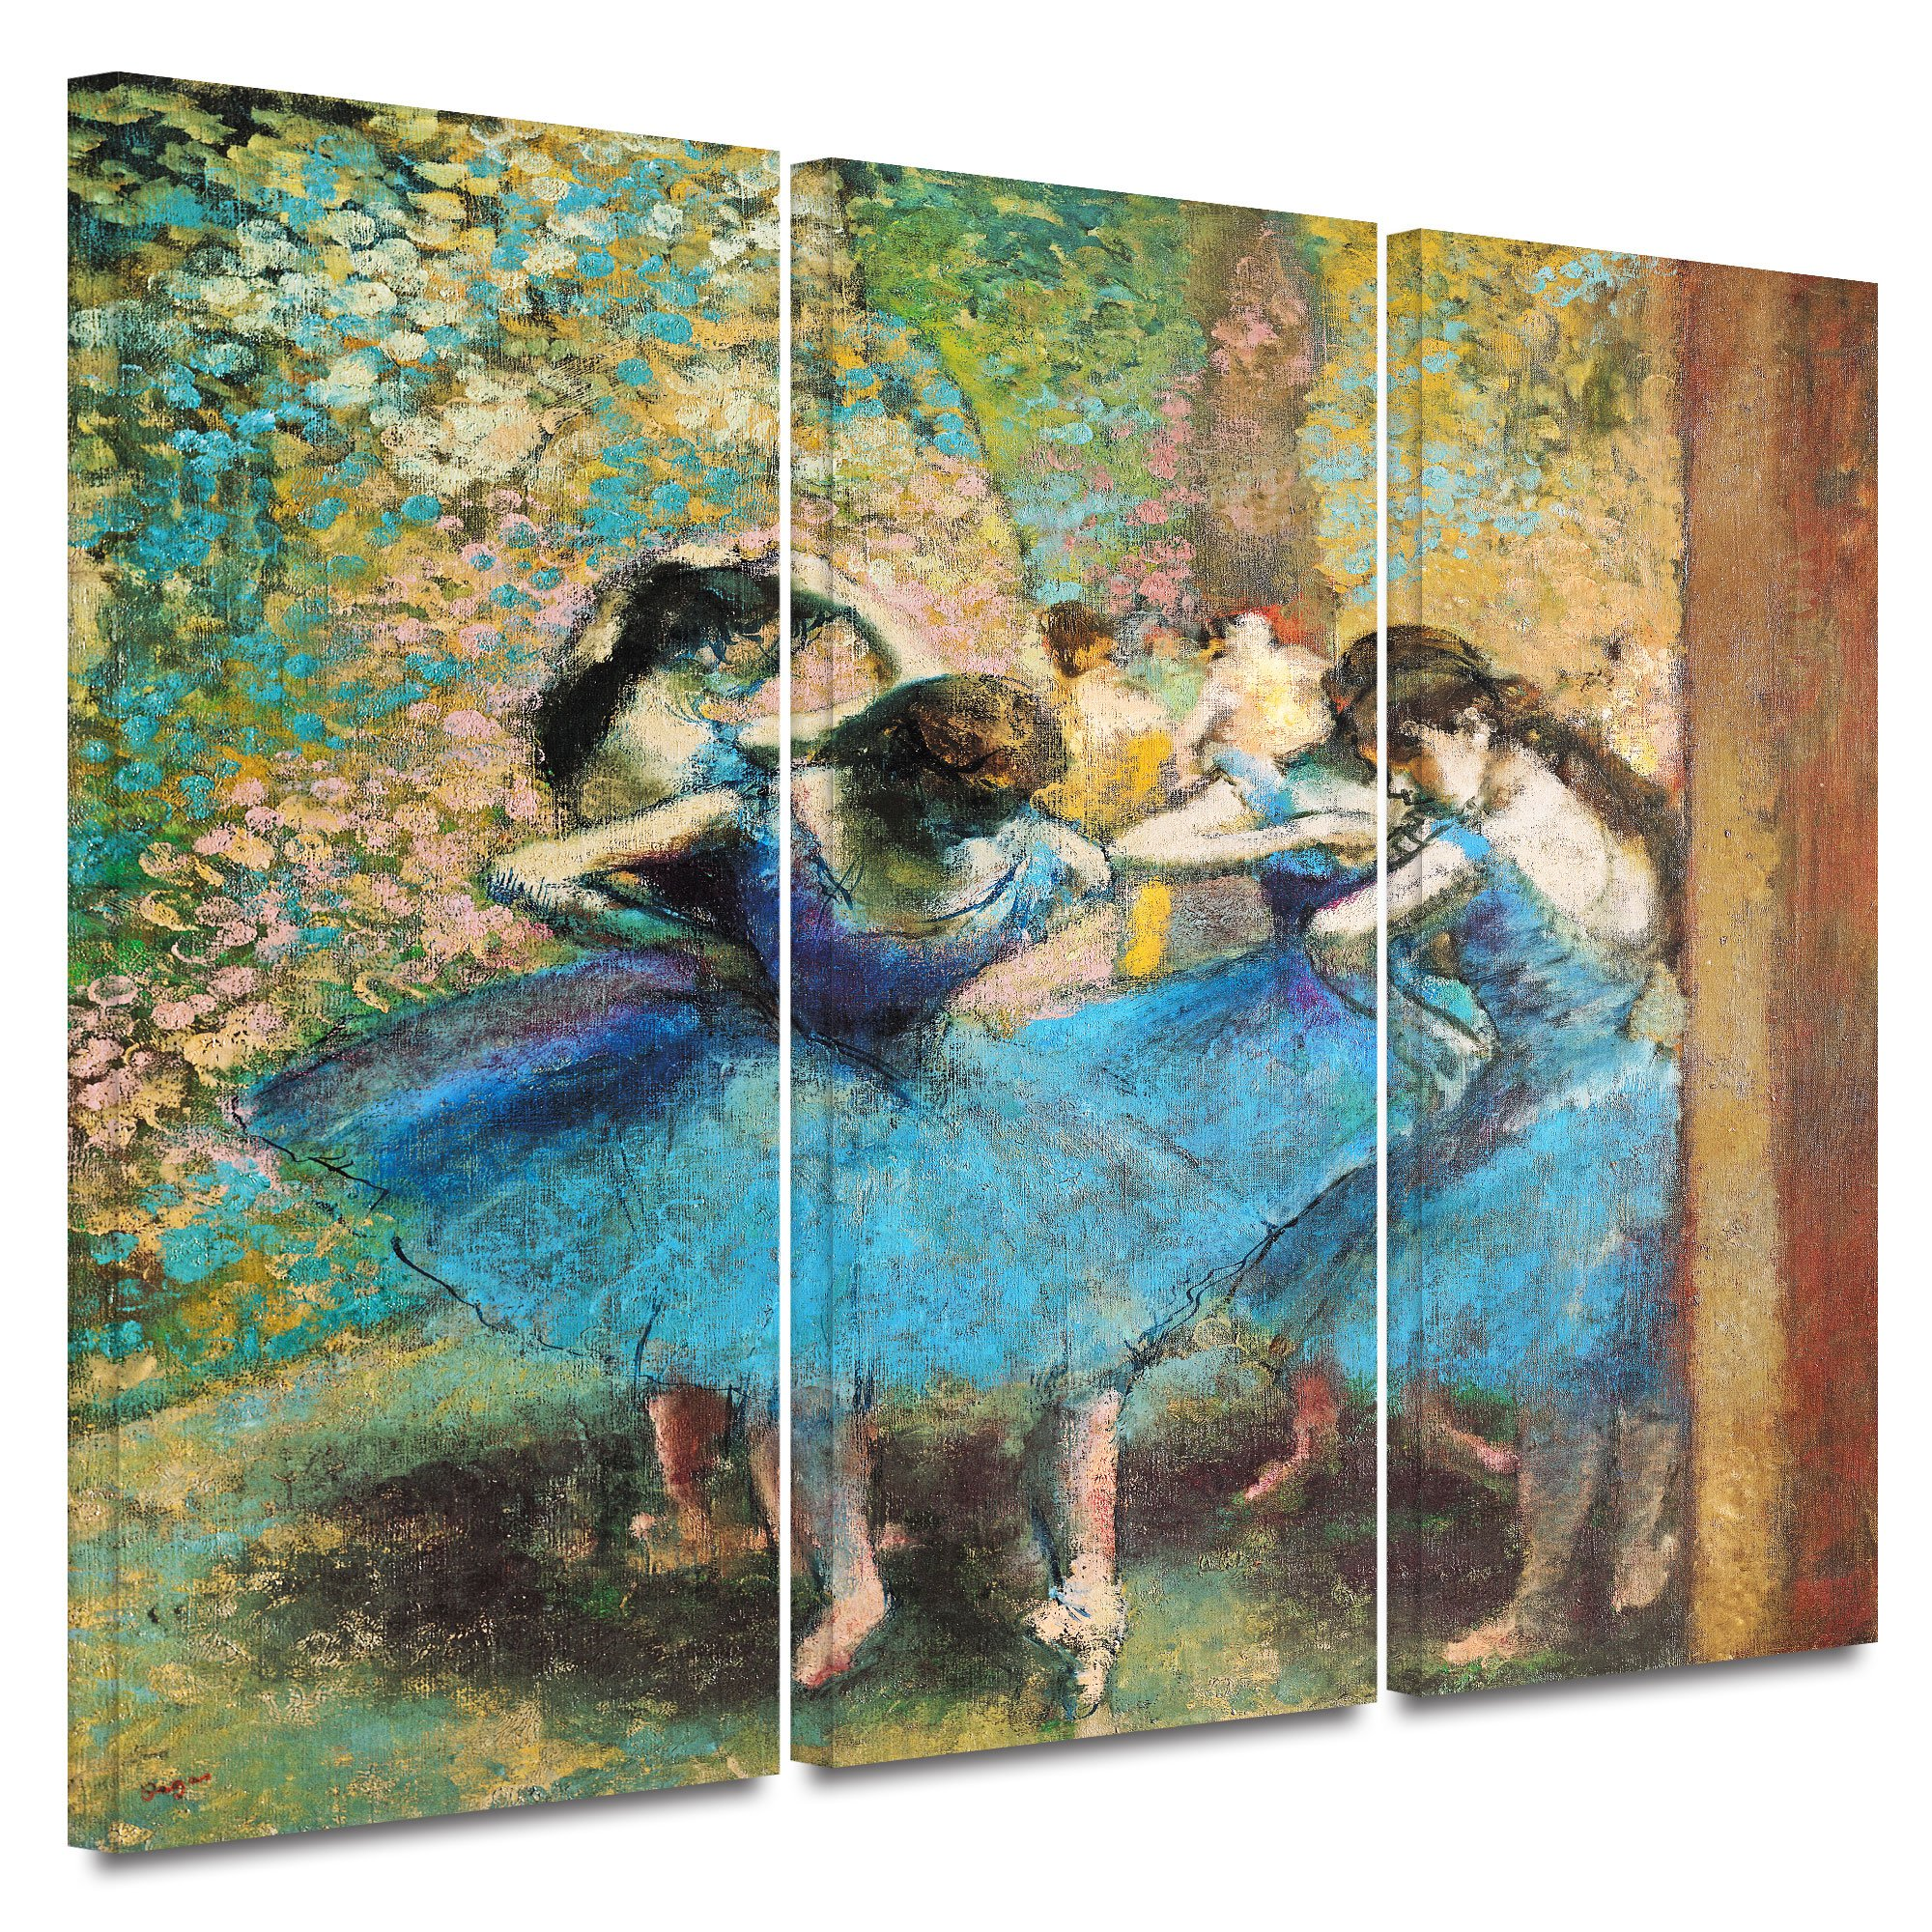 ArtWall Edgar Degas 'Dancers in Blue' 3-Piece Gallery Wrapped Canvas Artwork, 24 by 36-Inch